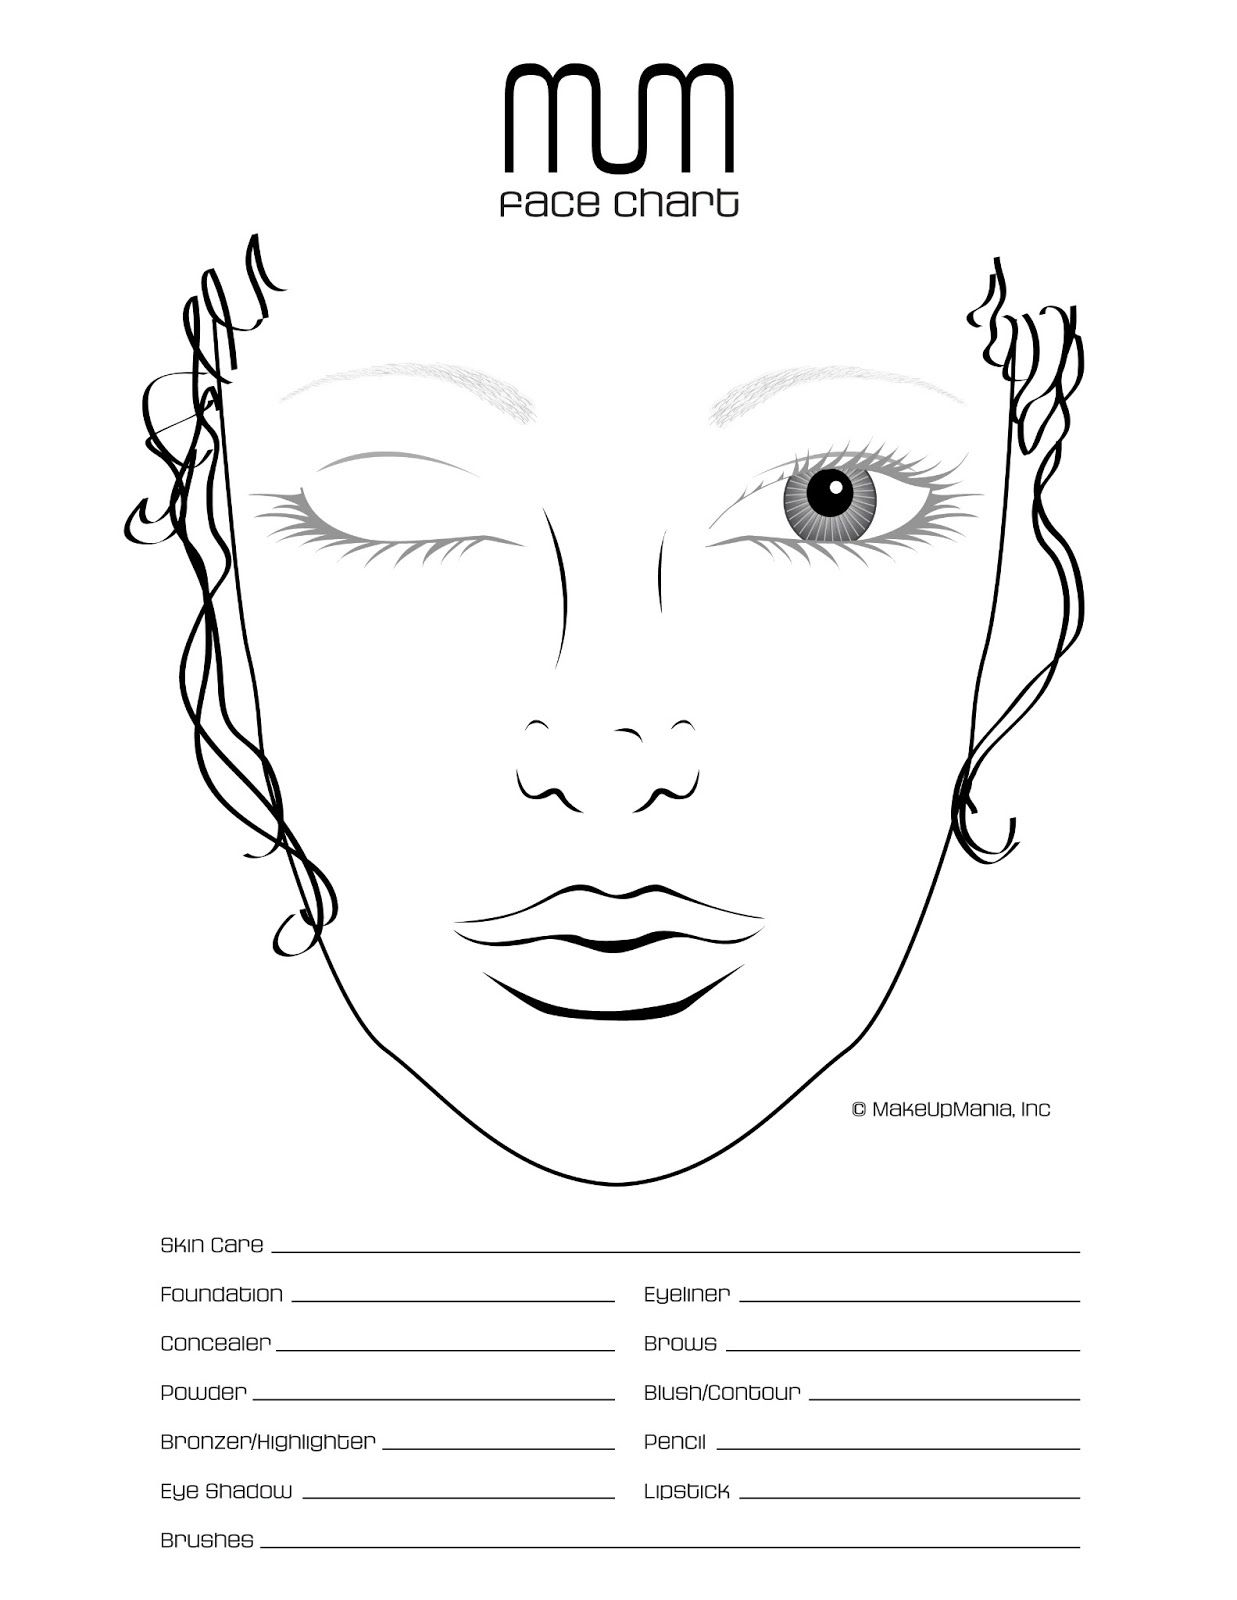 Blank Face Chart Temples Male And Female Hi All Hope